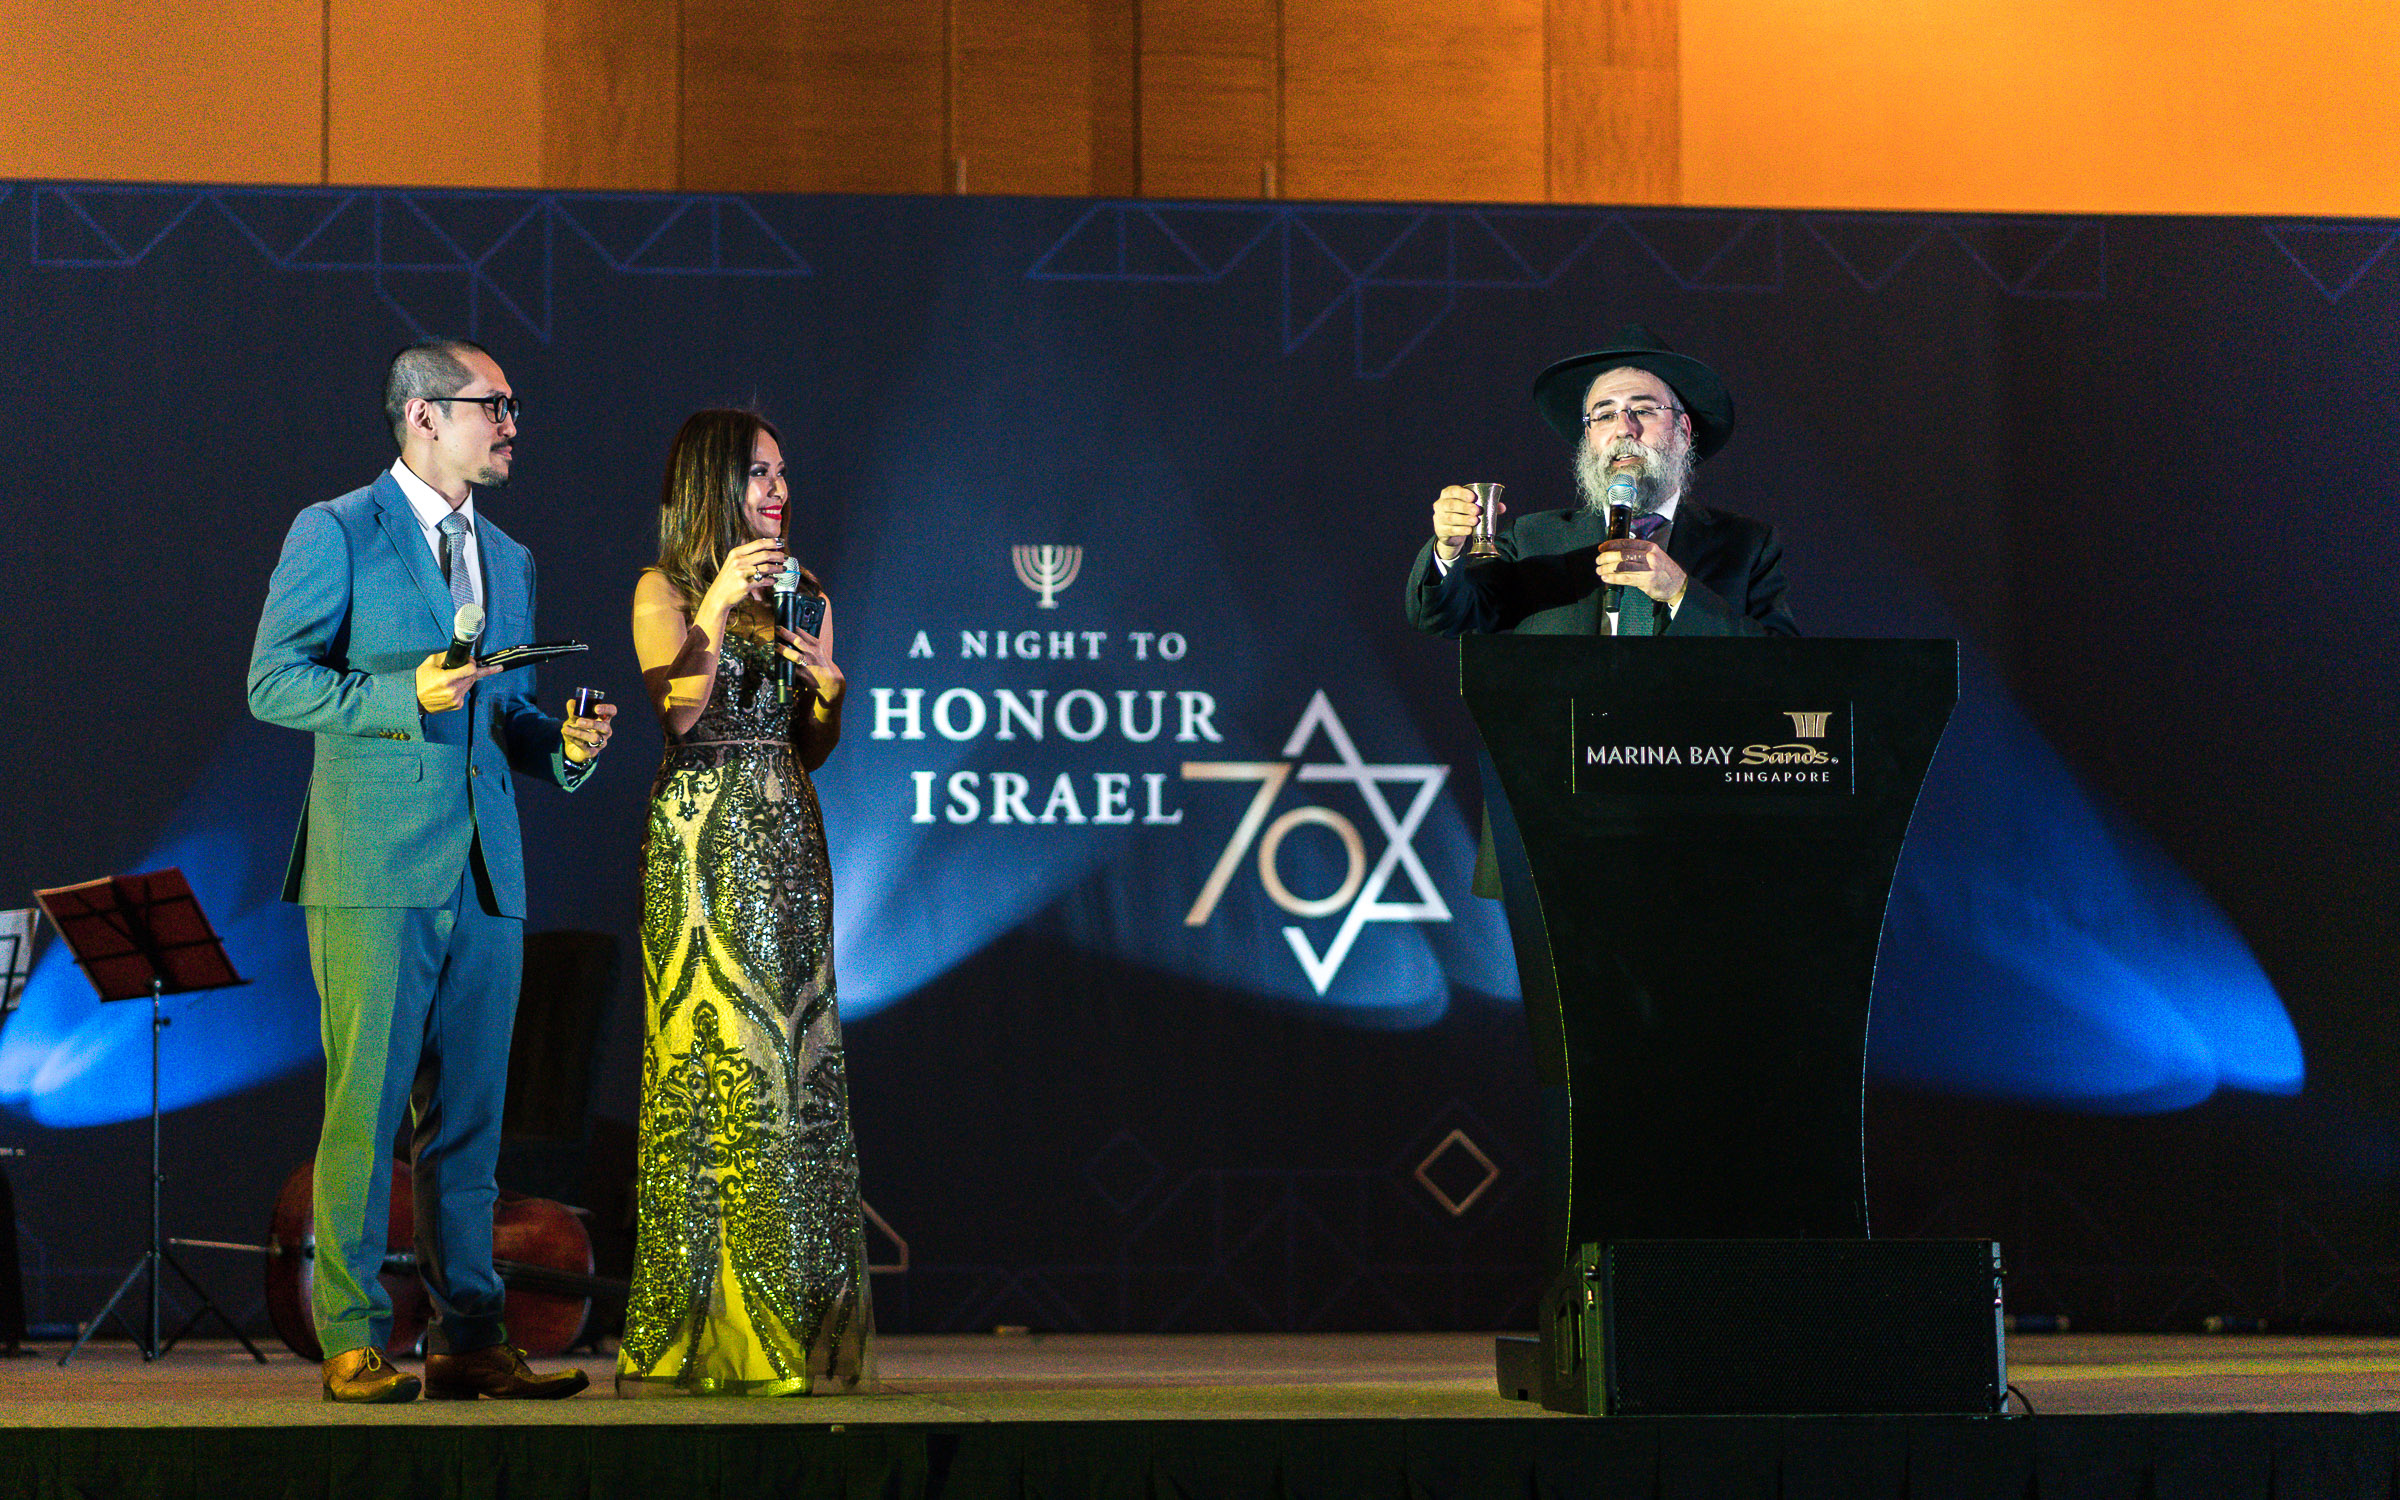 A Night to Honour Israel 2018